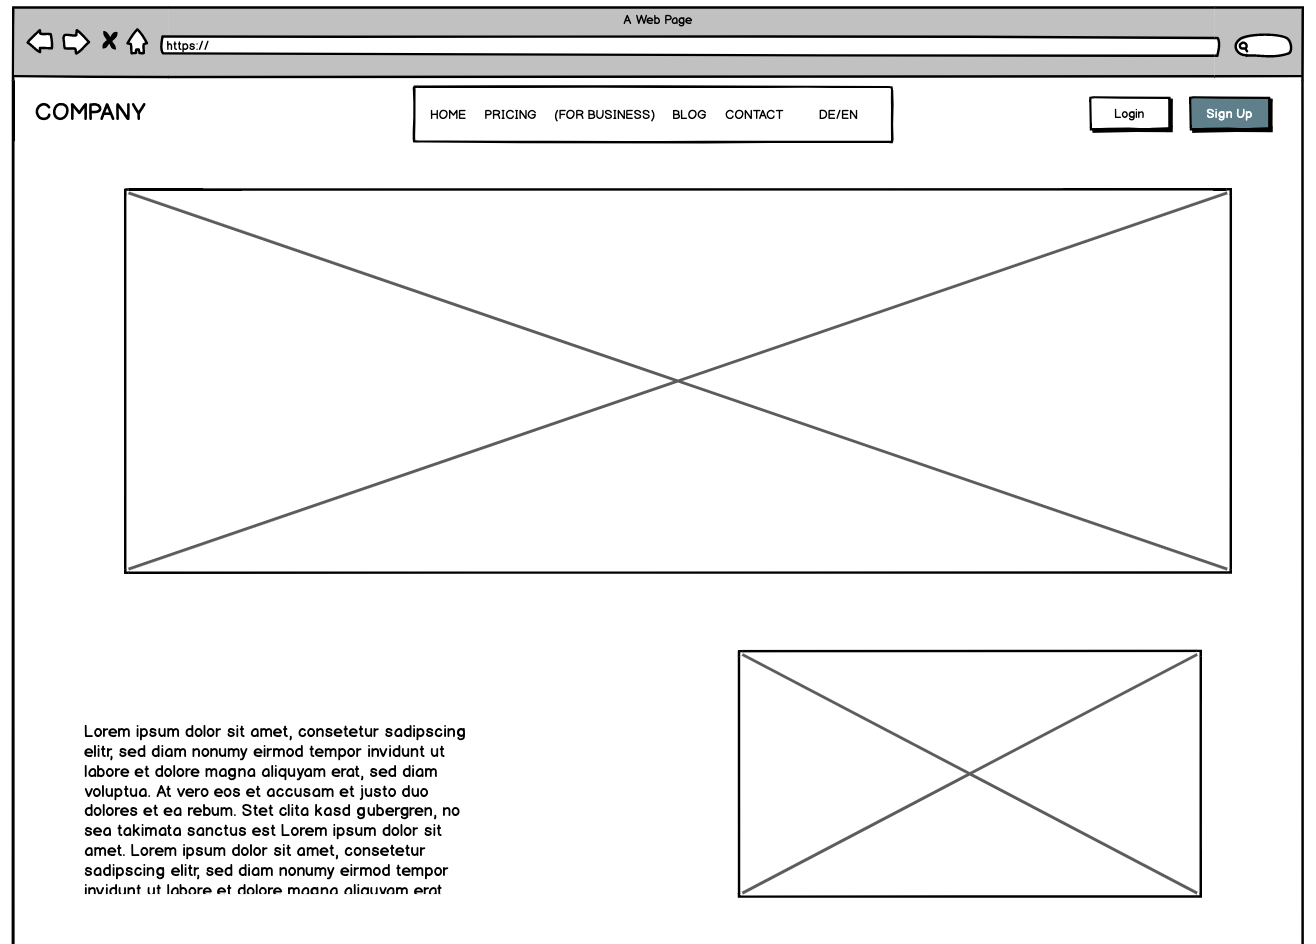 Example of a wireframe prototype as a task of the UX Designer